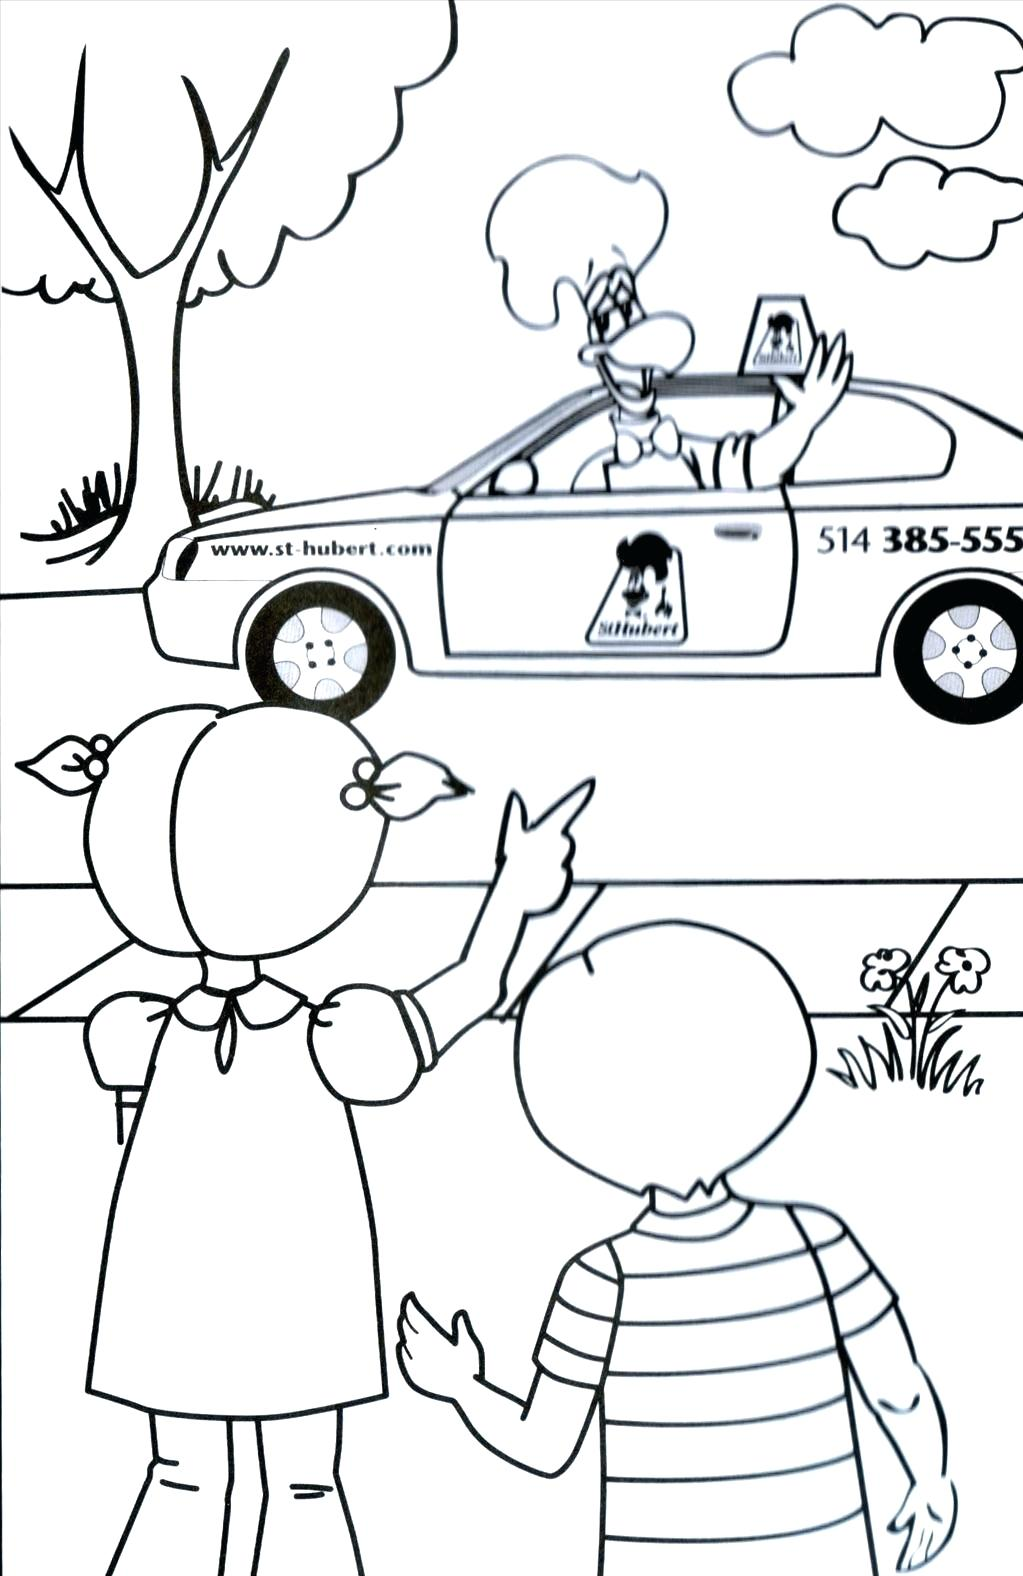 1023x1576 Growth Stranger Danger Coloring Pages Zacchaeus Dreams Page